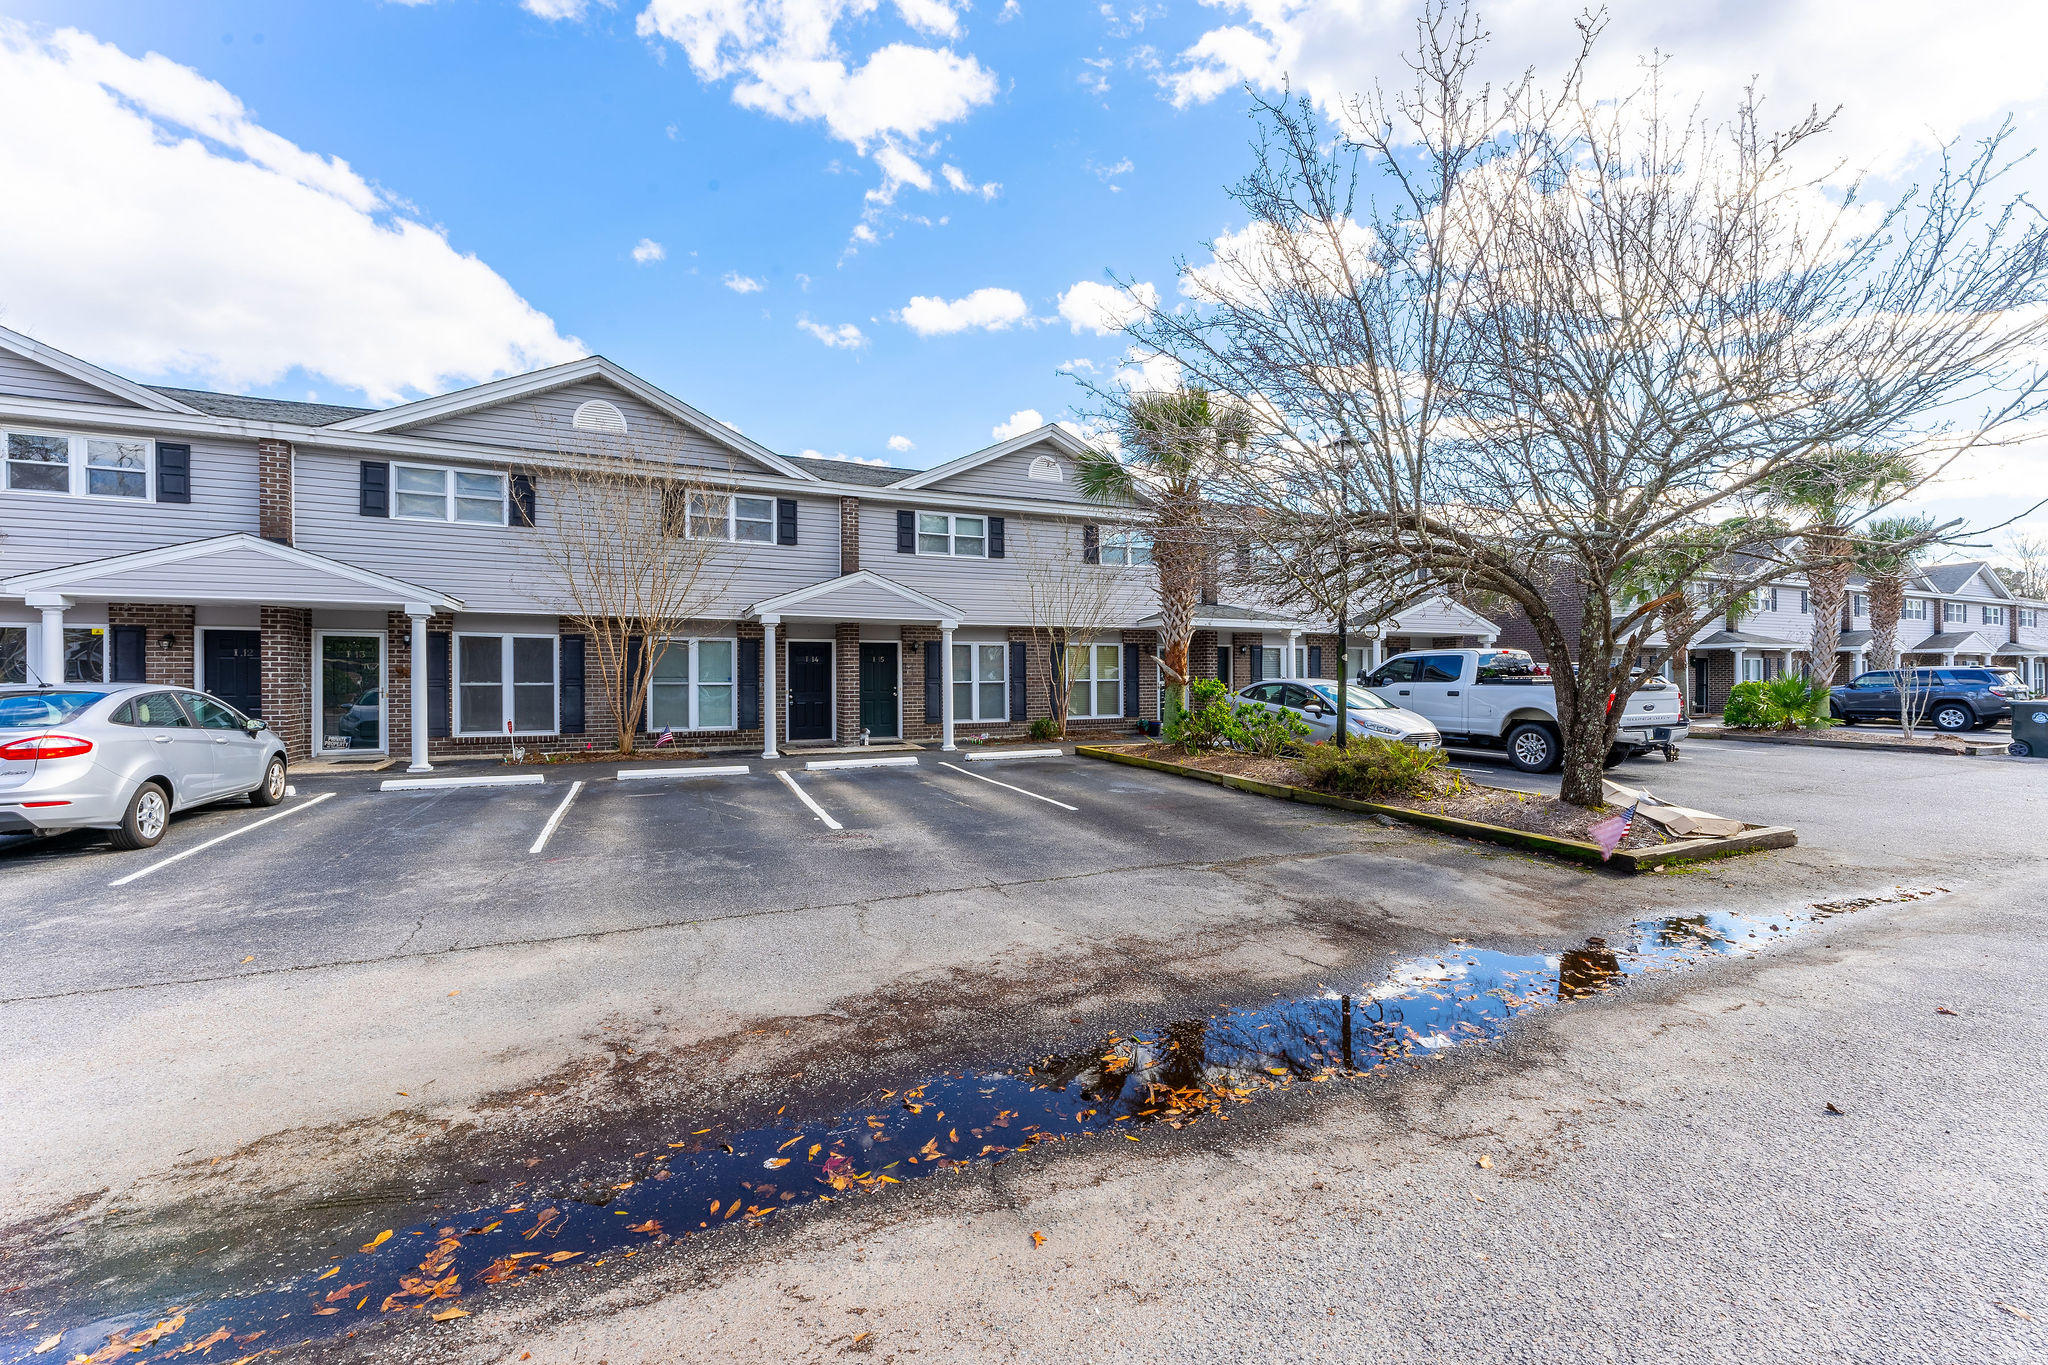 Mepkin Place Homes For Sale - 1713 Boone Hall, Charleston, SC - 0